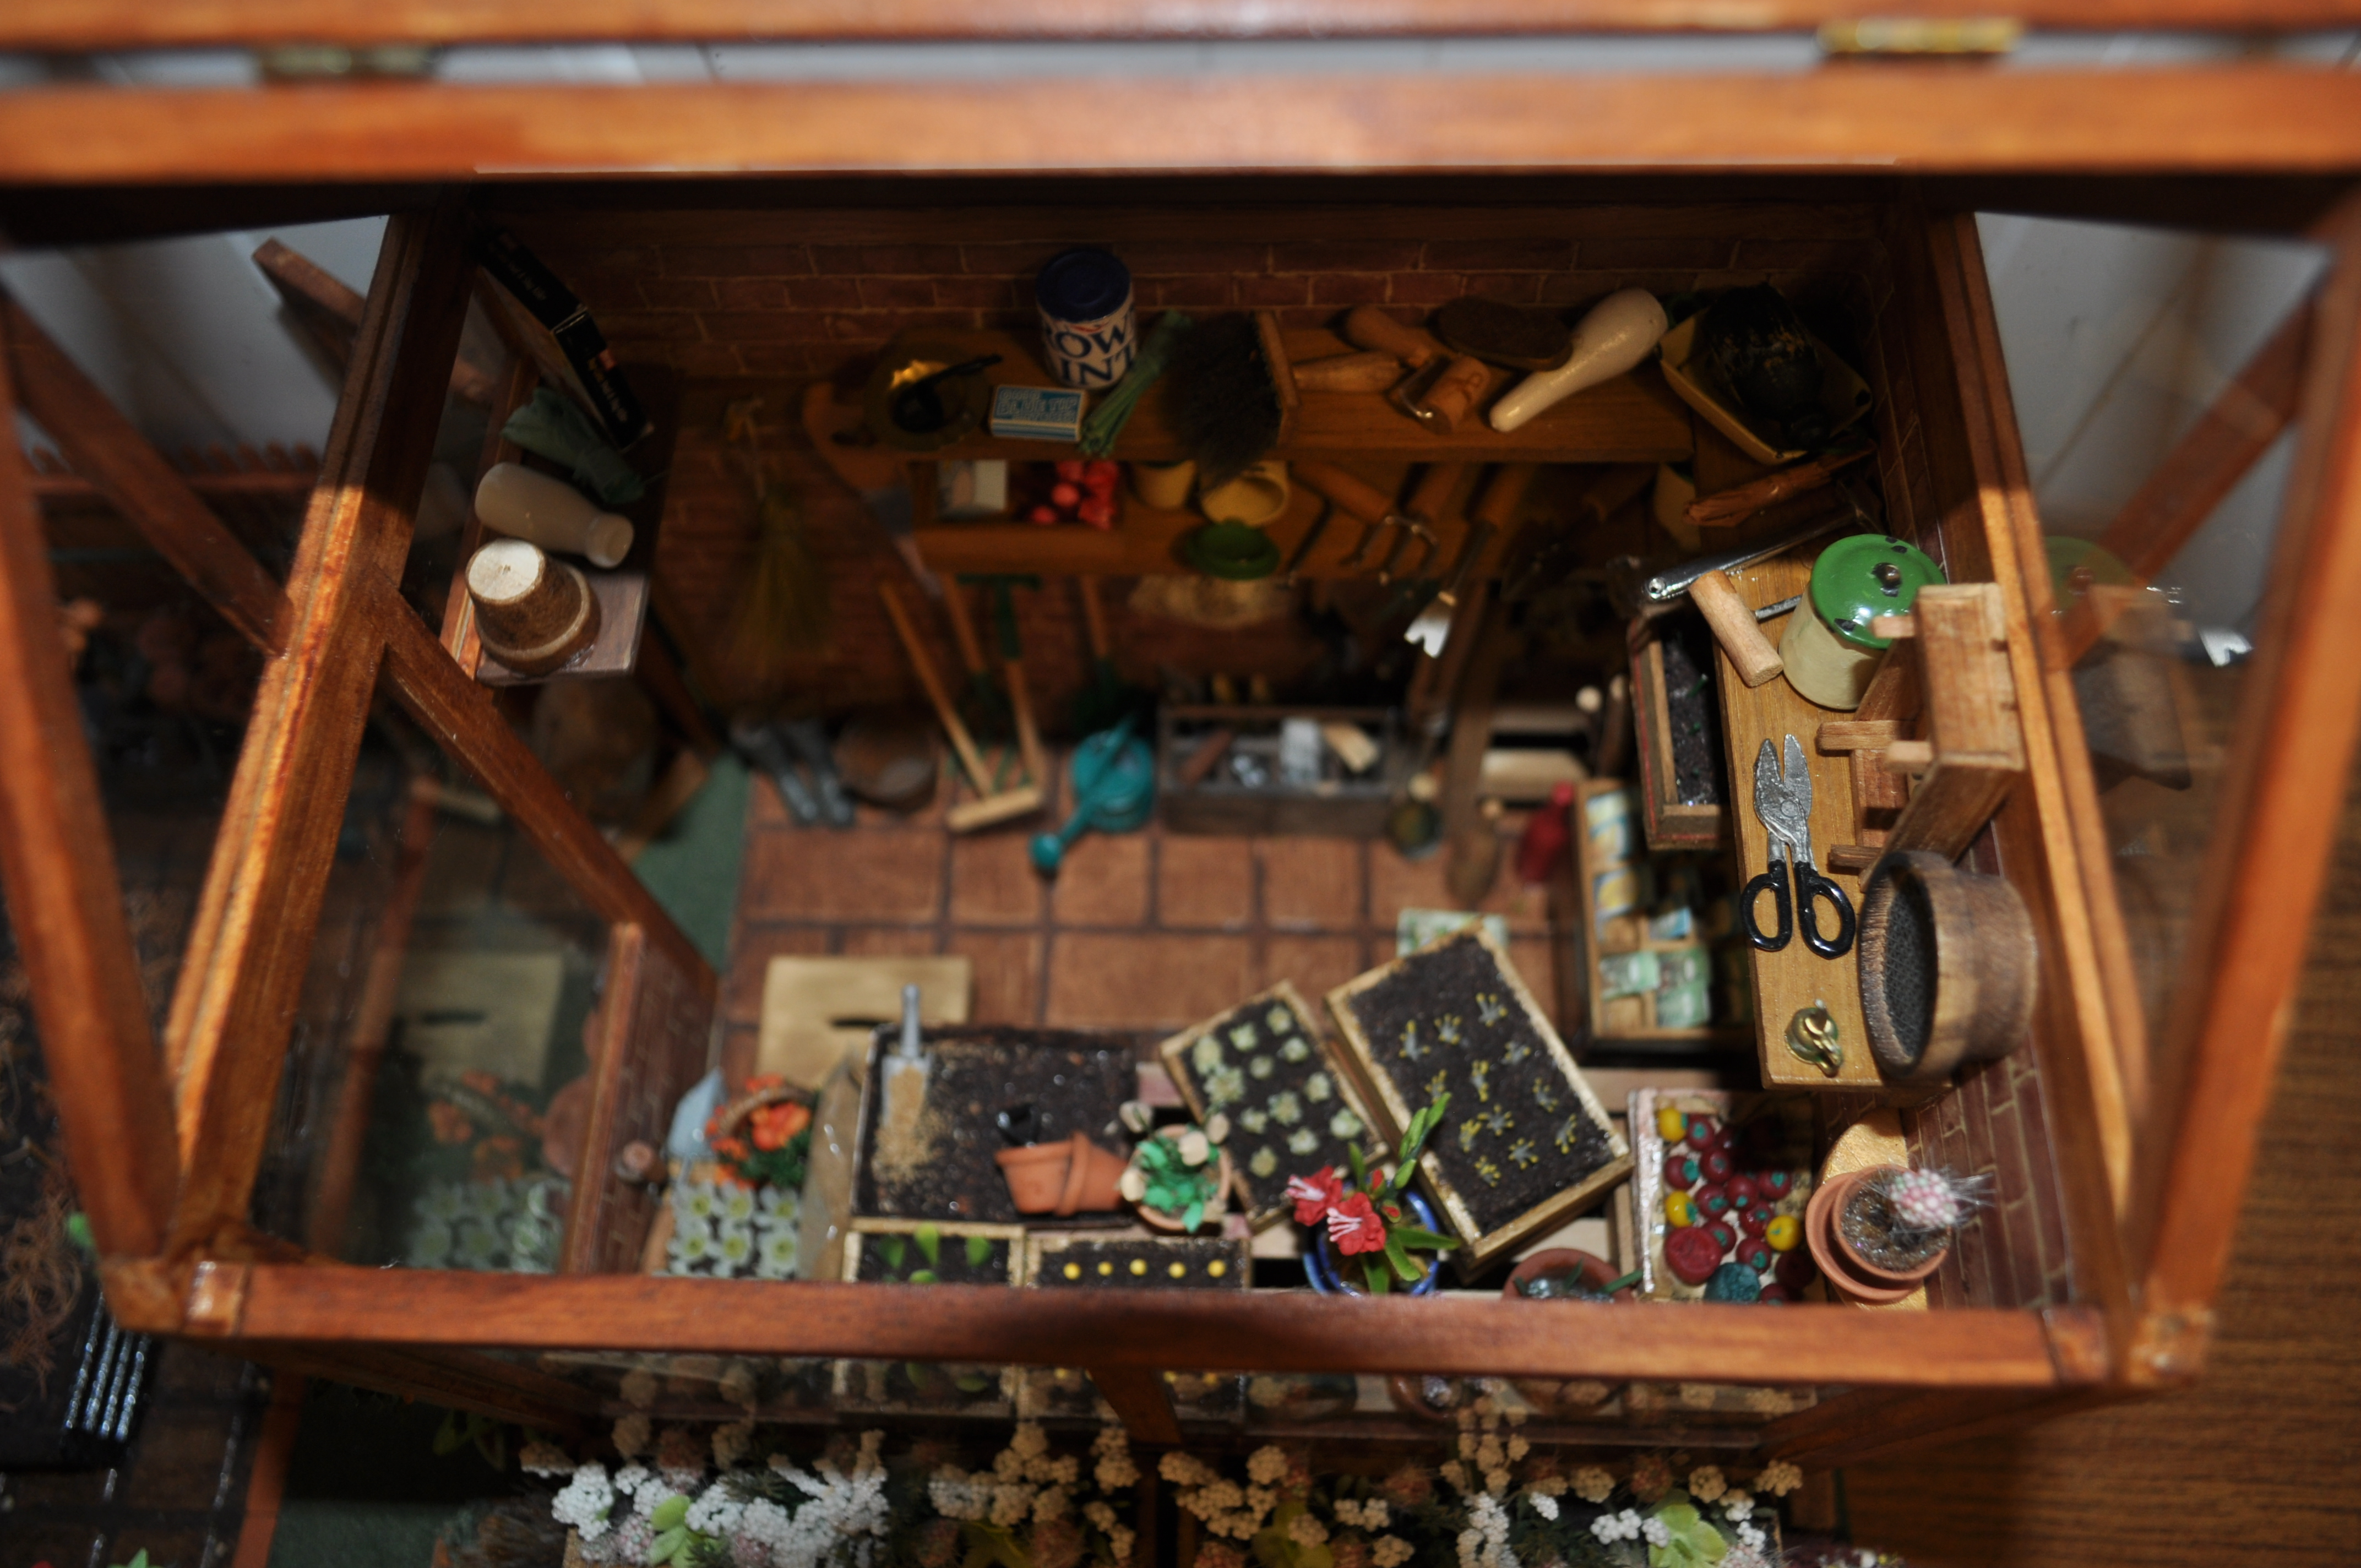 Miniatures Weaverthorpe Dolls House Doll Wiring We Cater For Everyone From The First Time Buyer That Is Just Developing An Interest In Hobby Through To Serious Collector